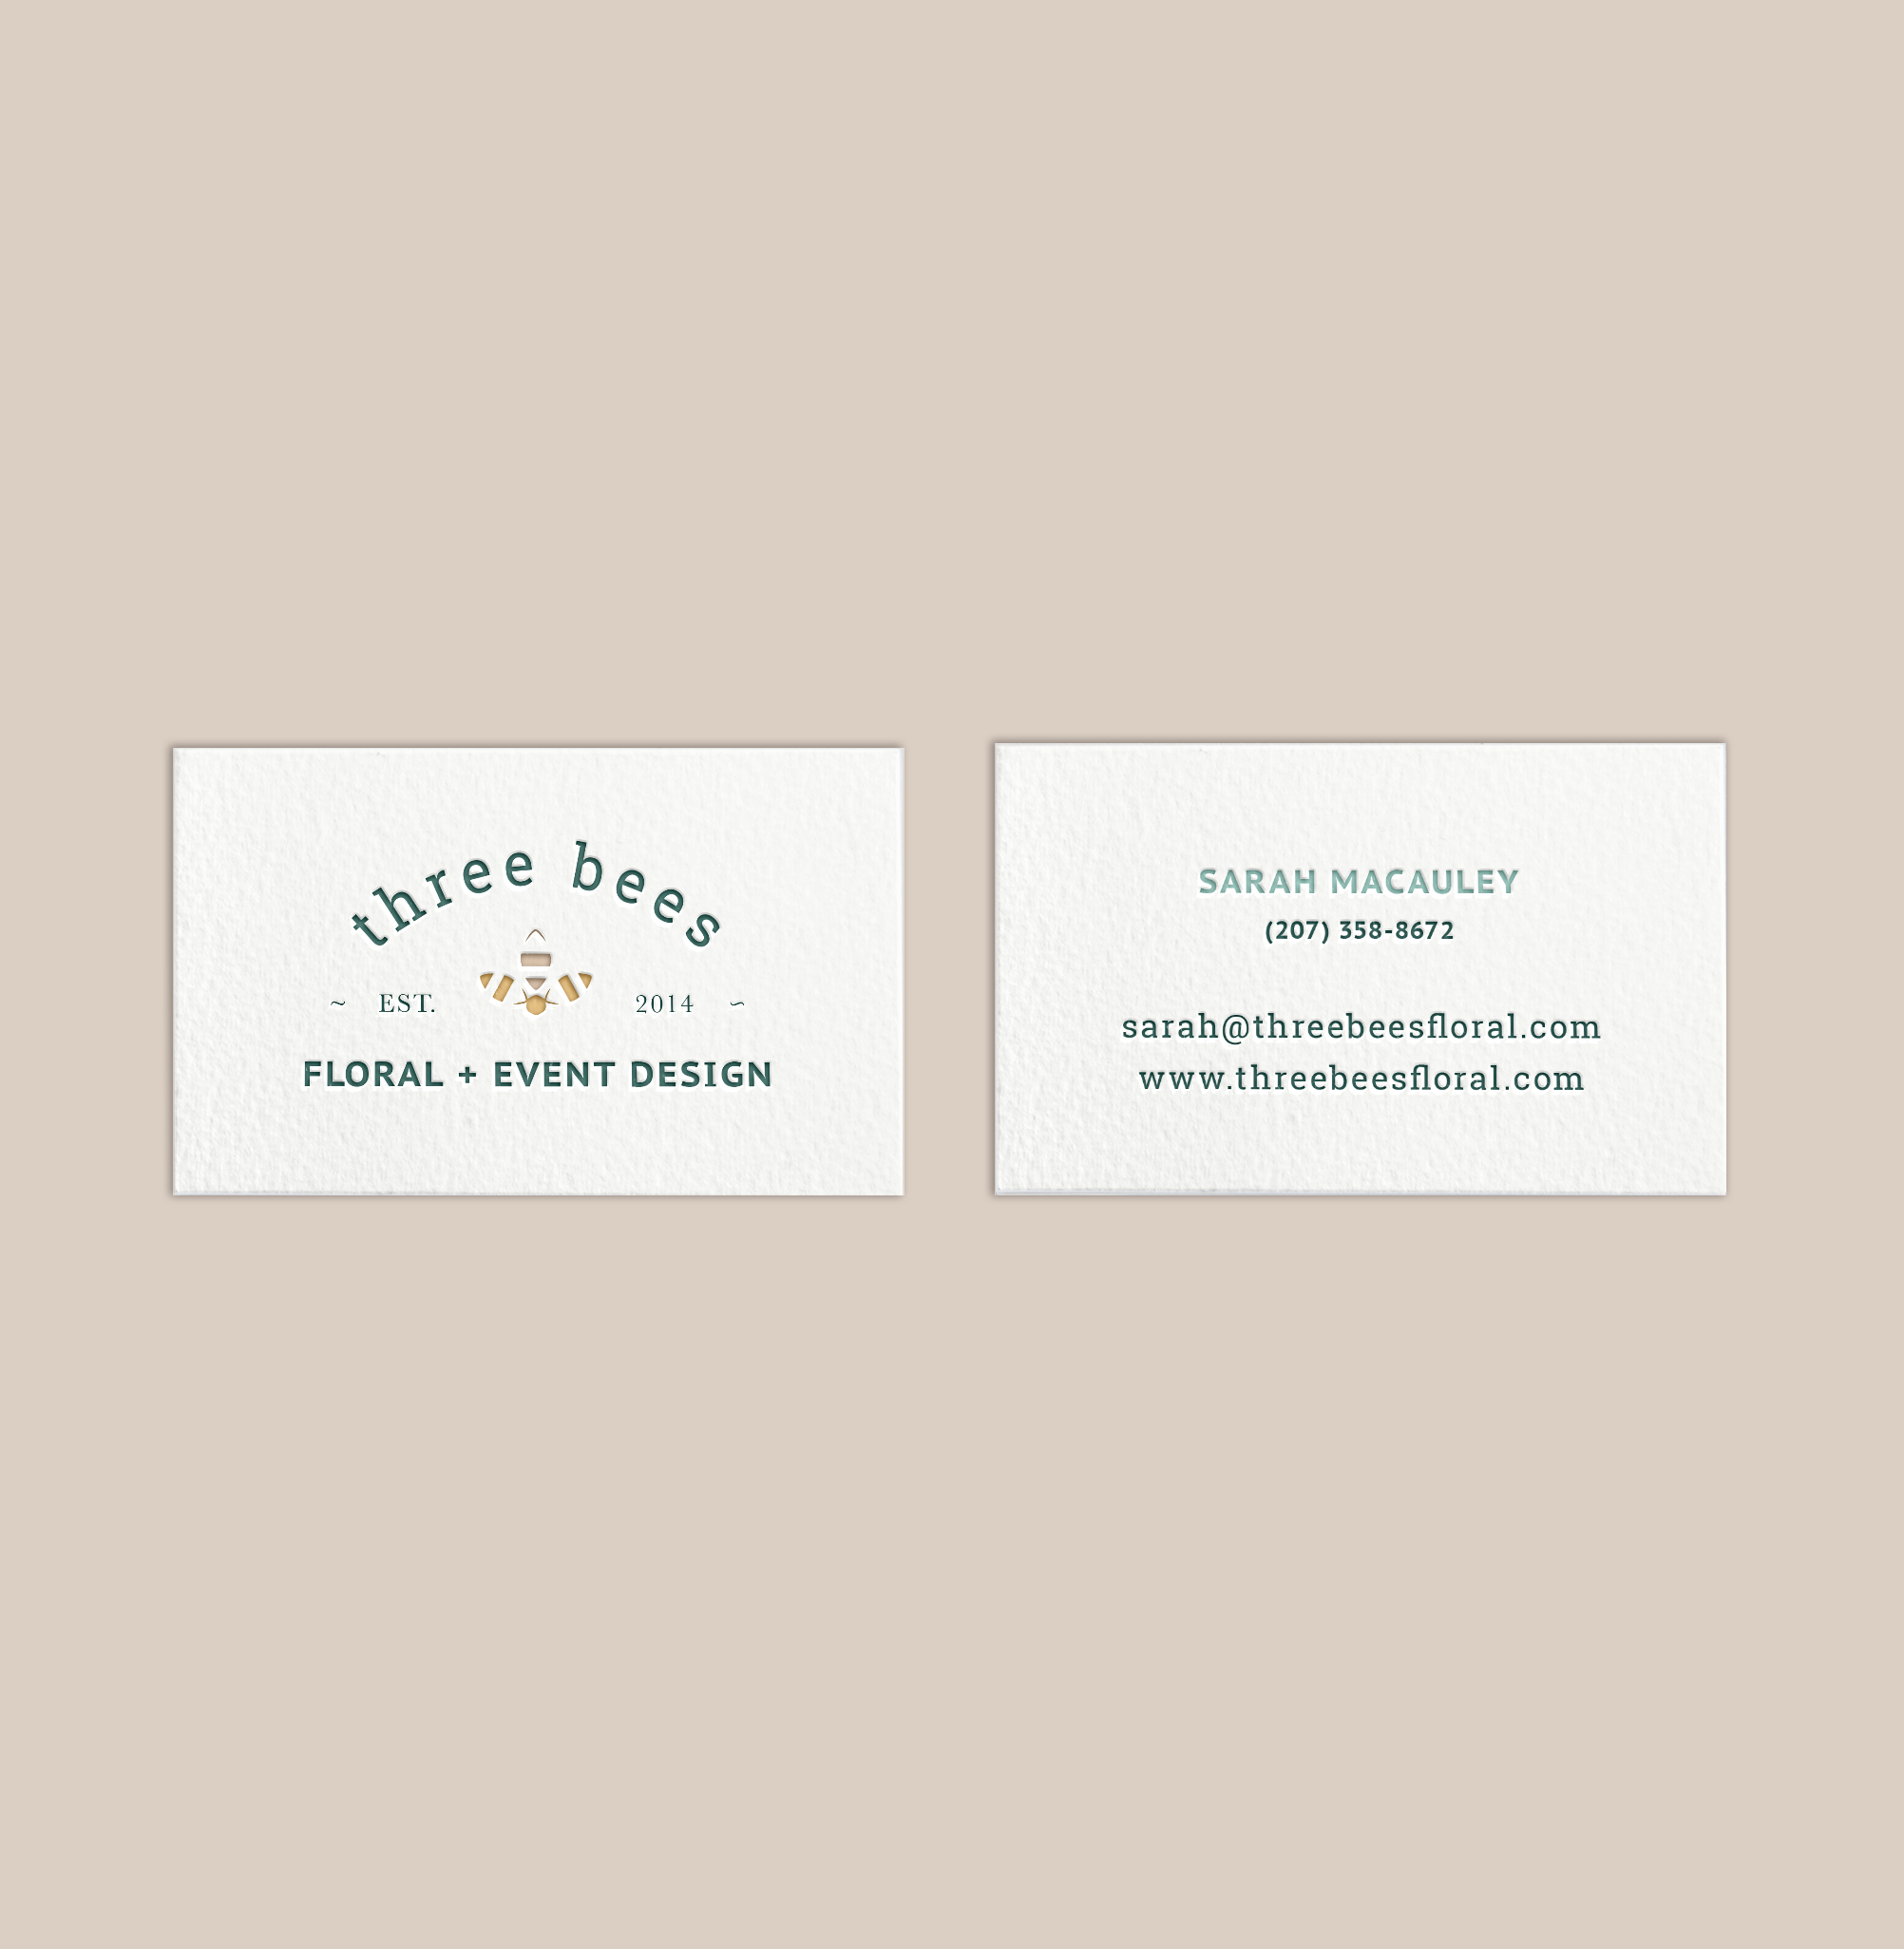 Three Bees Business Card Revised 31.png